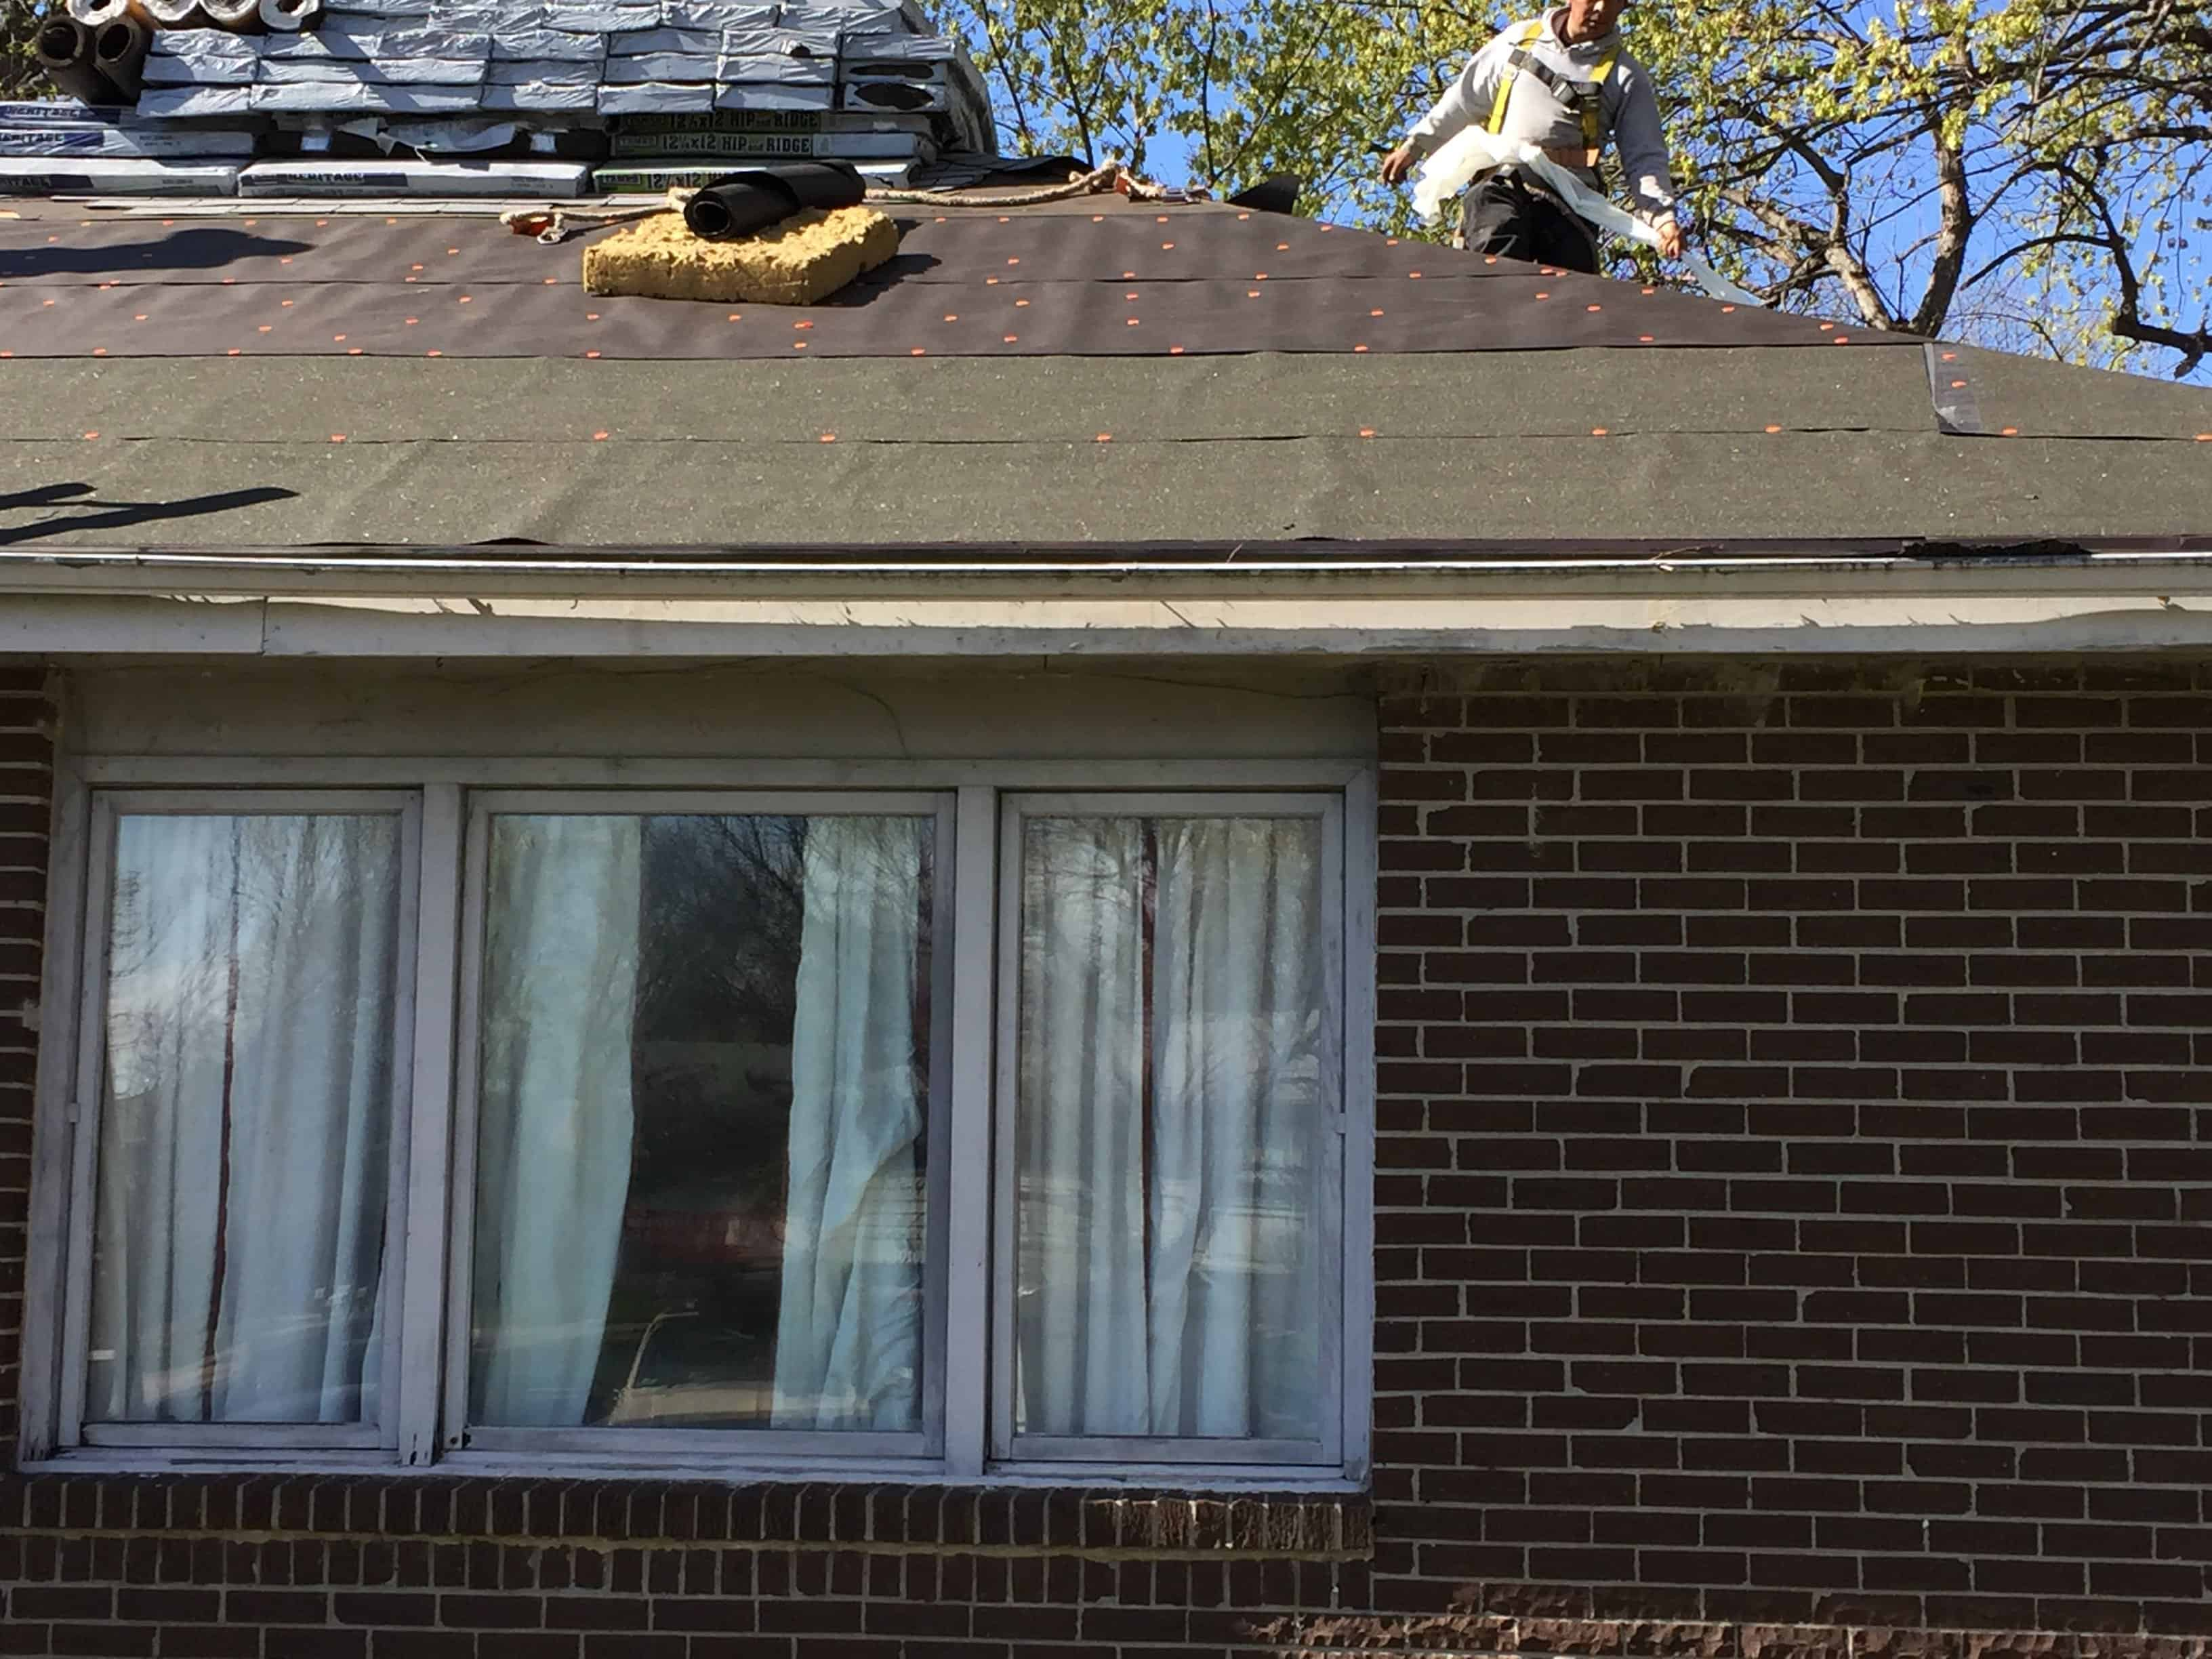 Roofing Siding Hail And Storm Damage Repair Associated